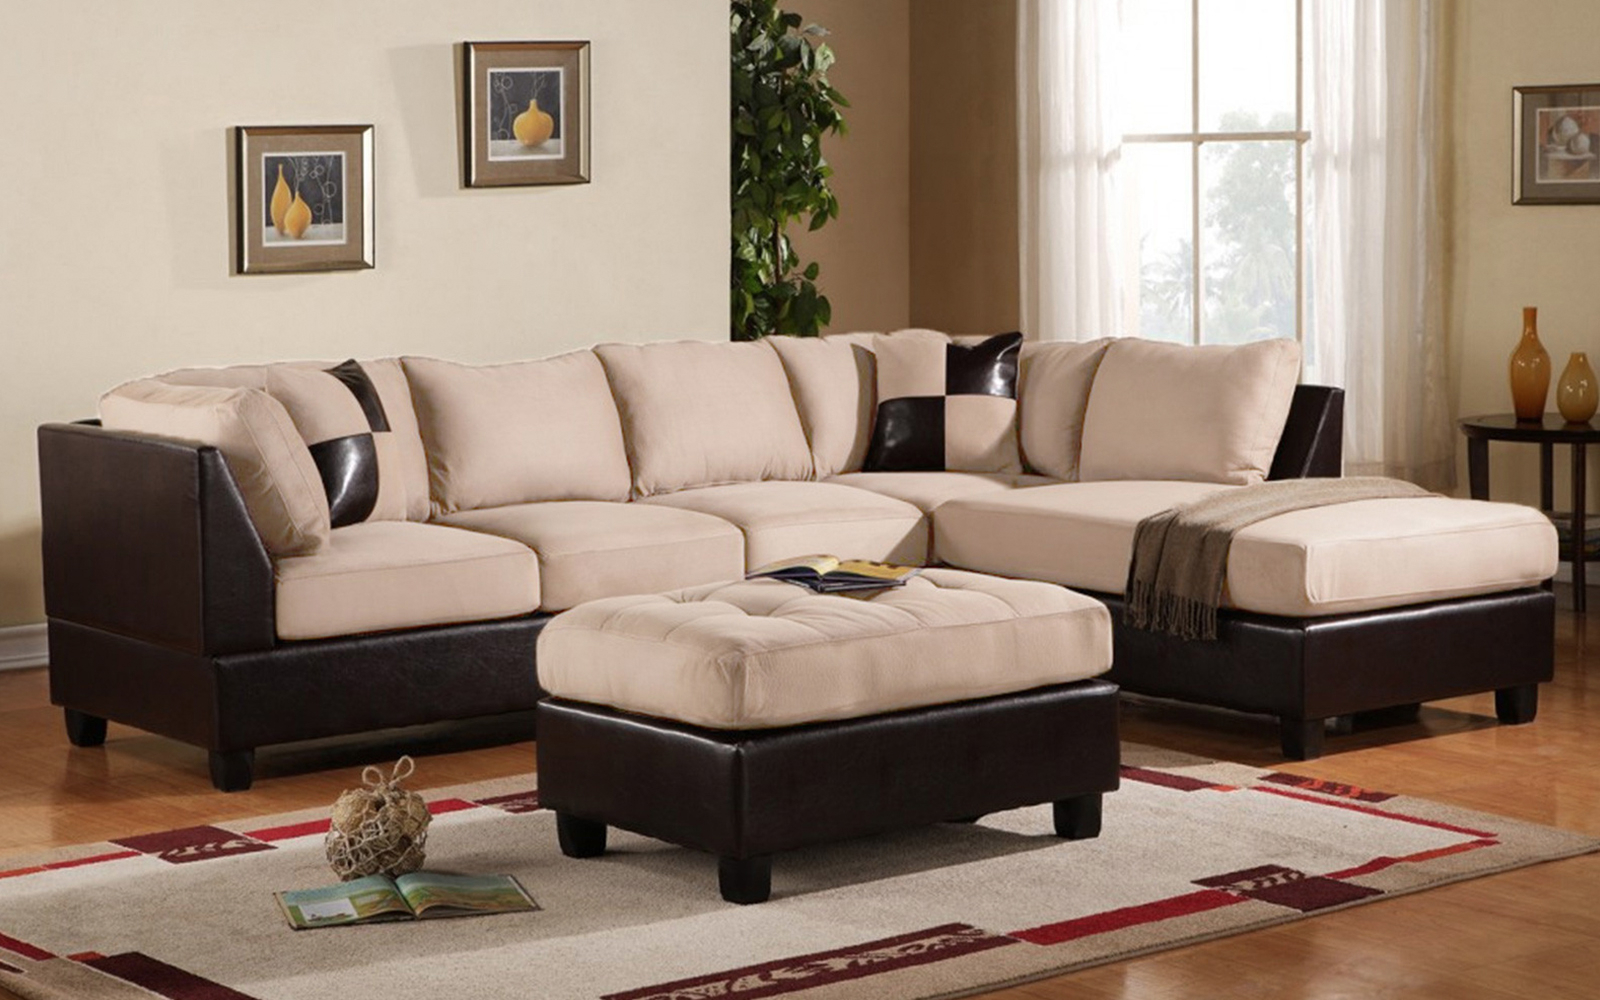 Mobilis 3 Pc Modern Soft Reversible Microfiber And Faux Inside Newest 3Pc Faux Leather Sectional Sofas Brown (View 10 of 25)